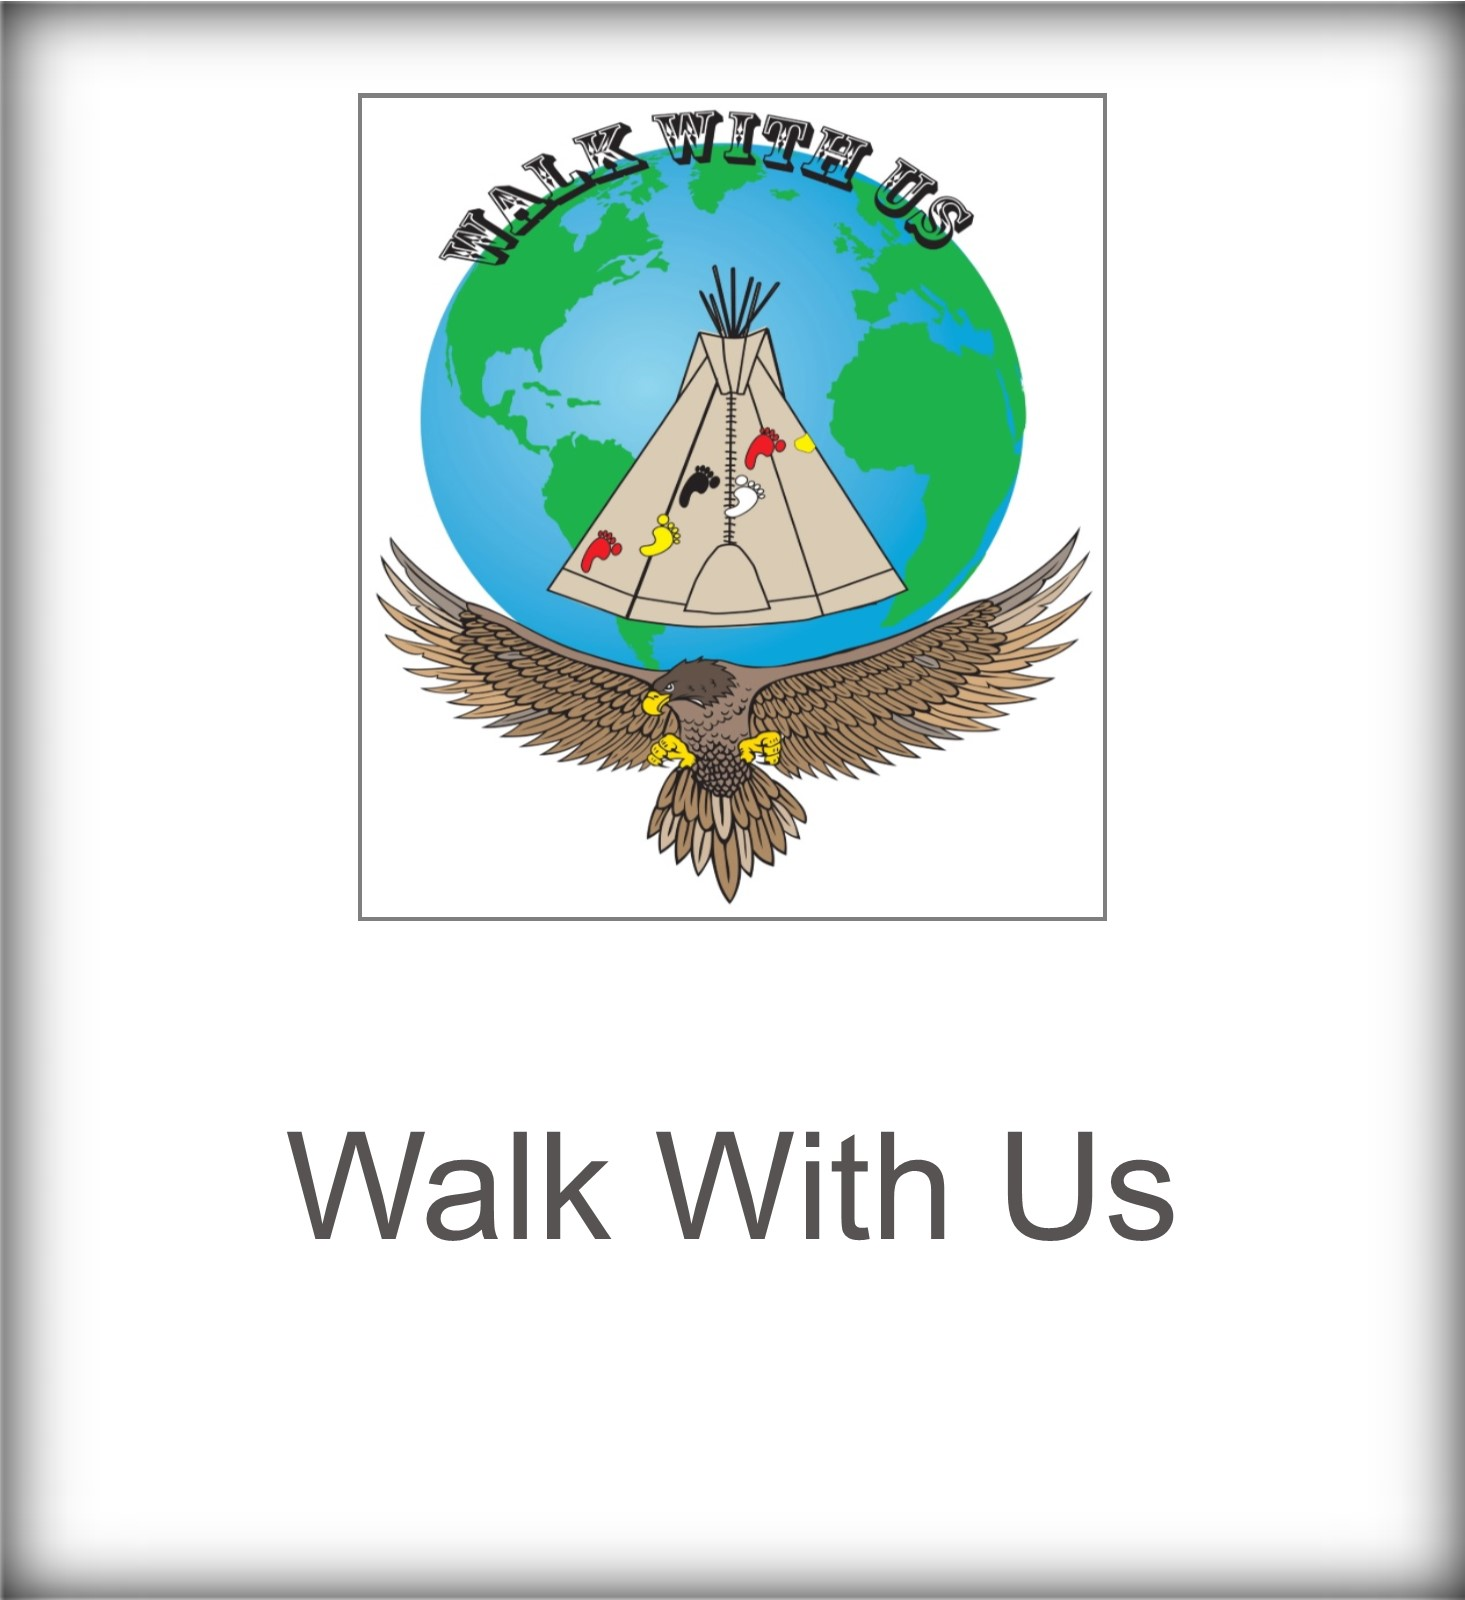 Walk With Us Project